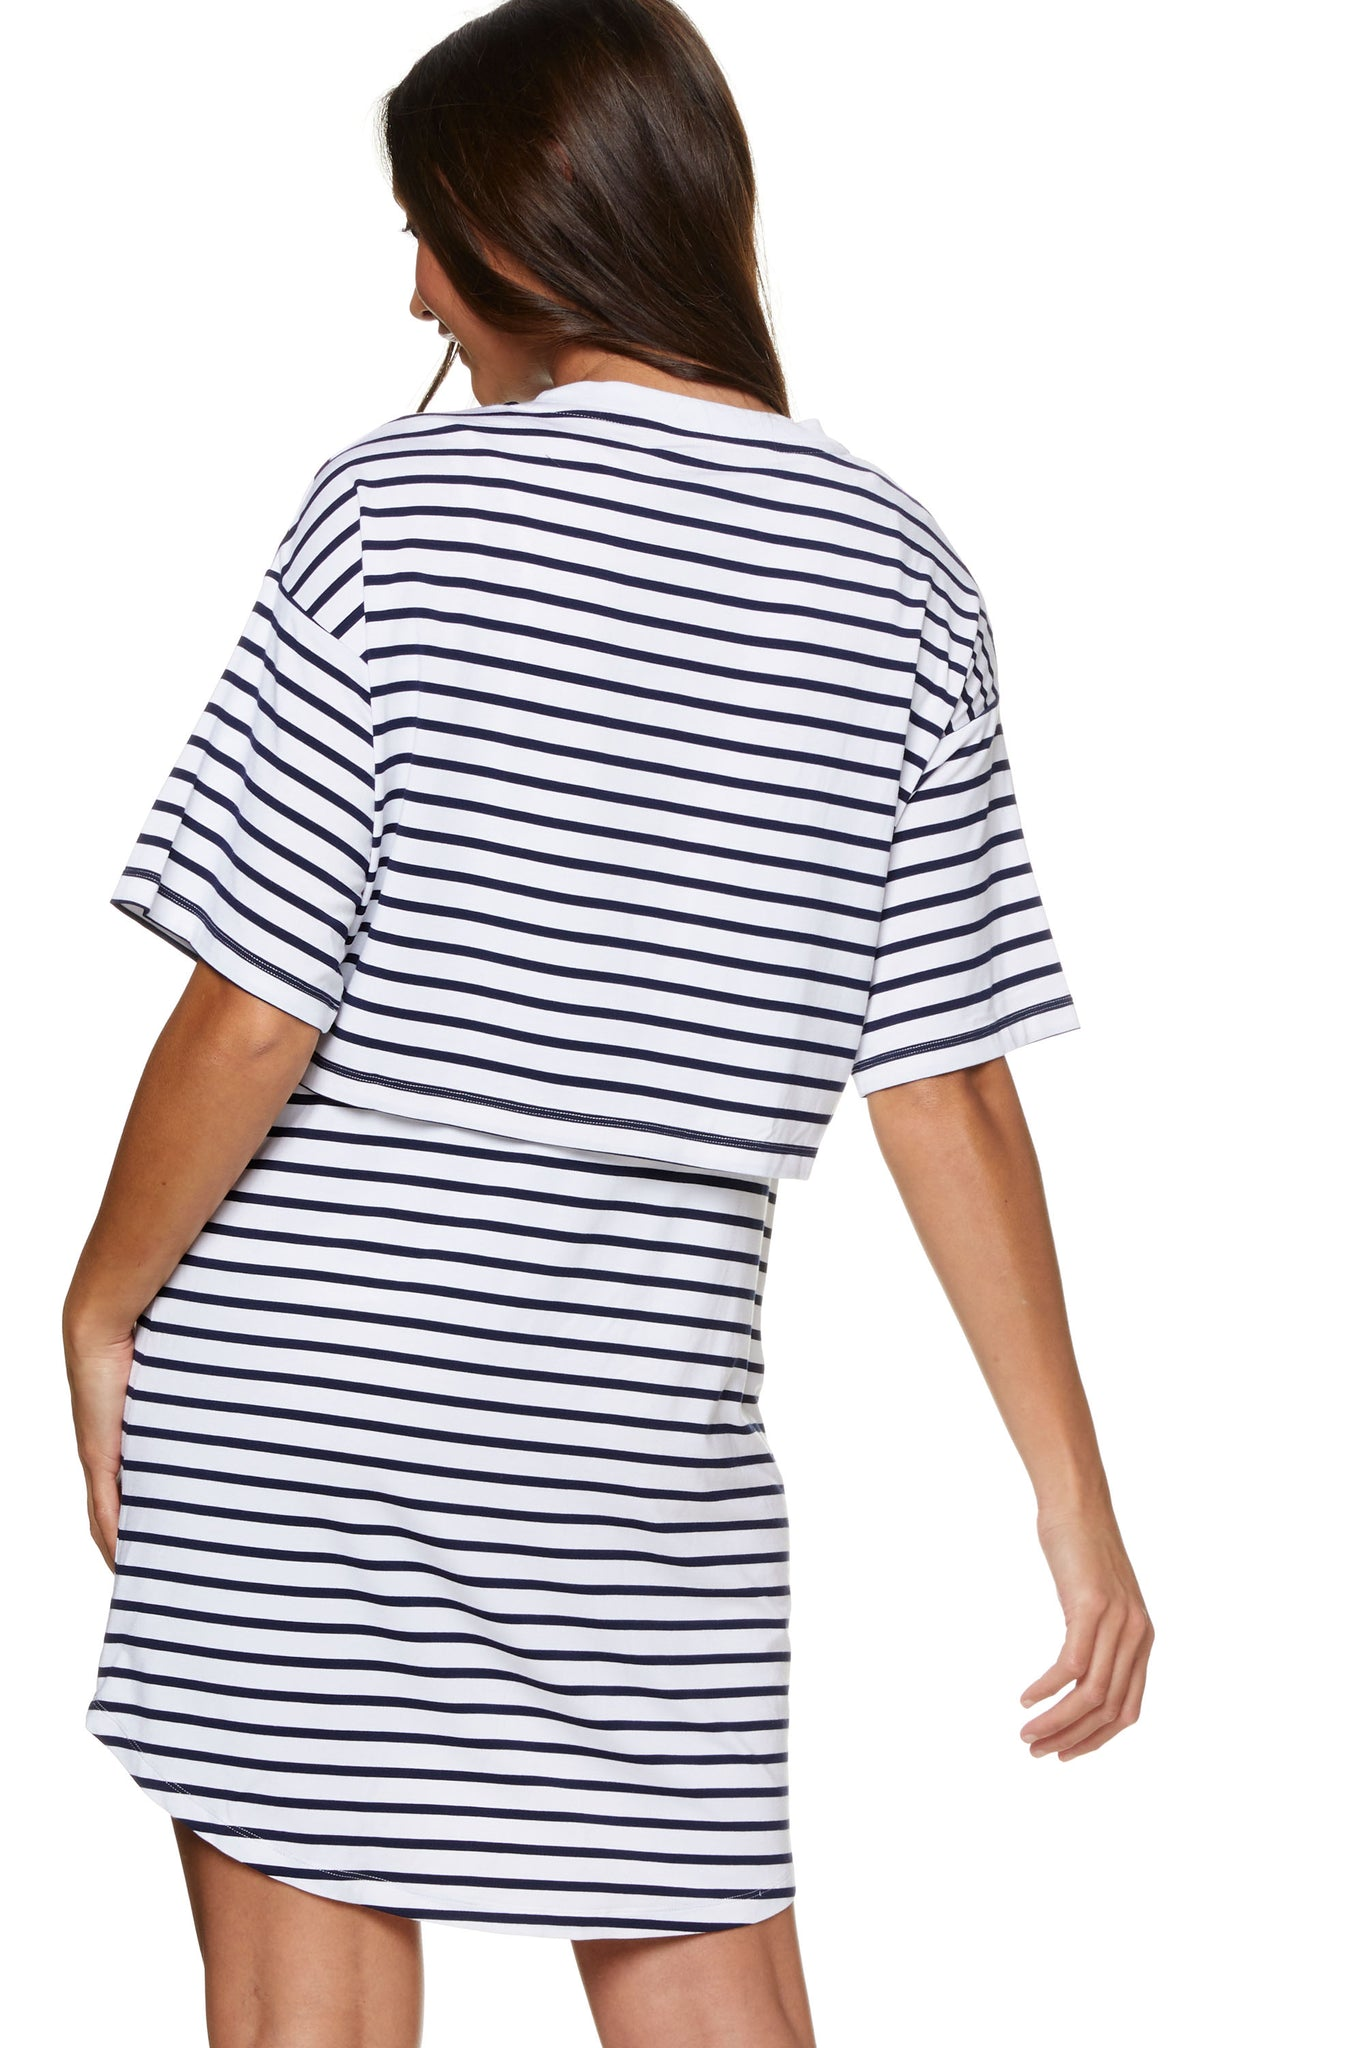 Stripe Maternity and Nursing Pajama Dress Image 4